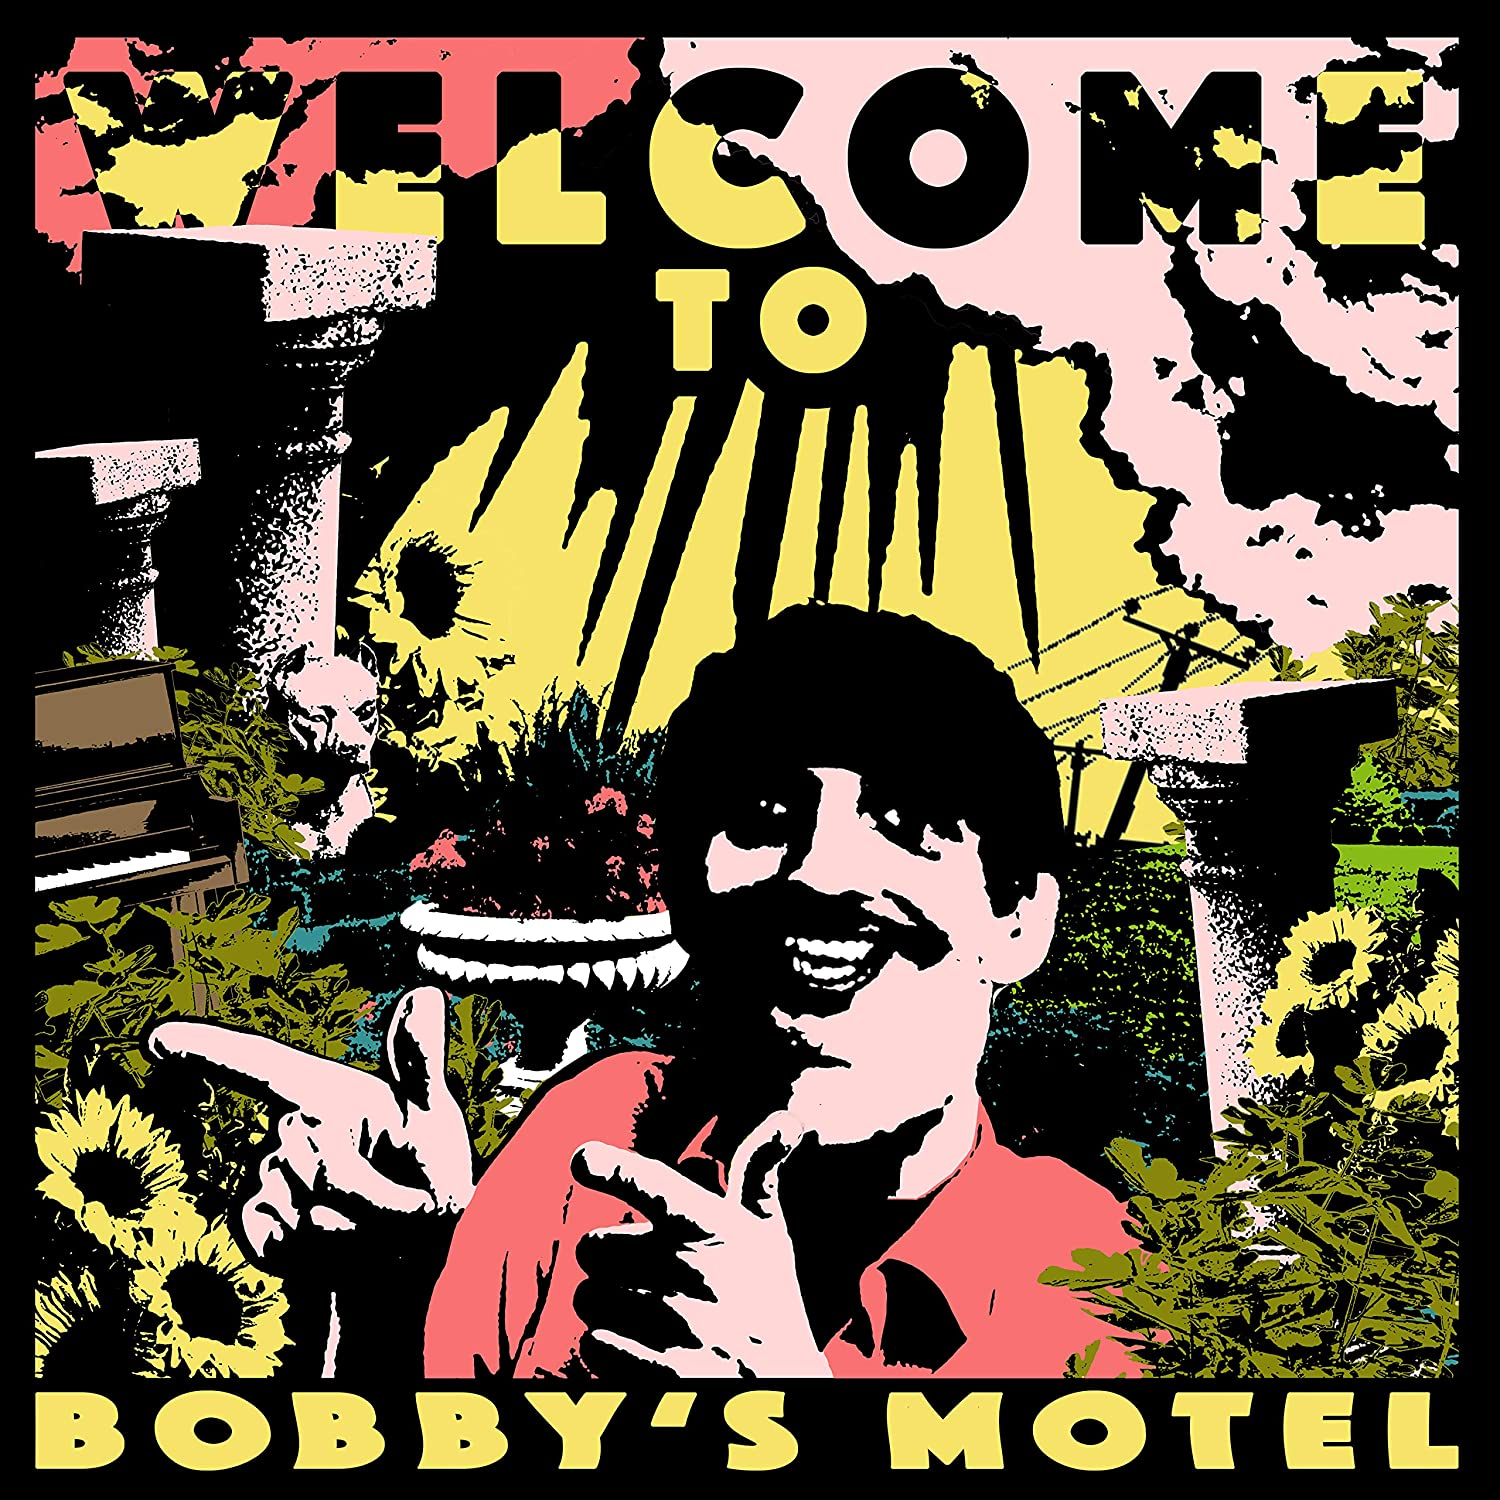 Pottery Welcome To Bobby's Motel